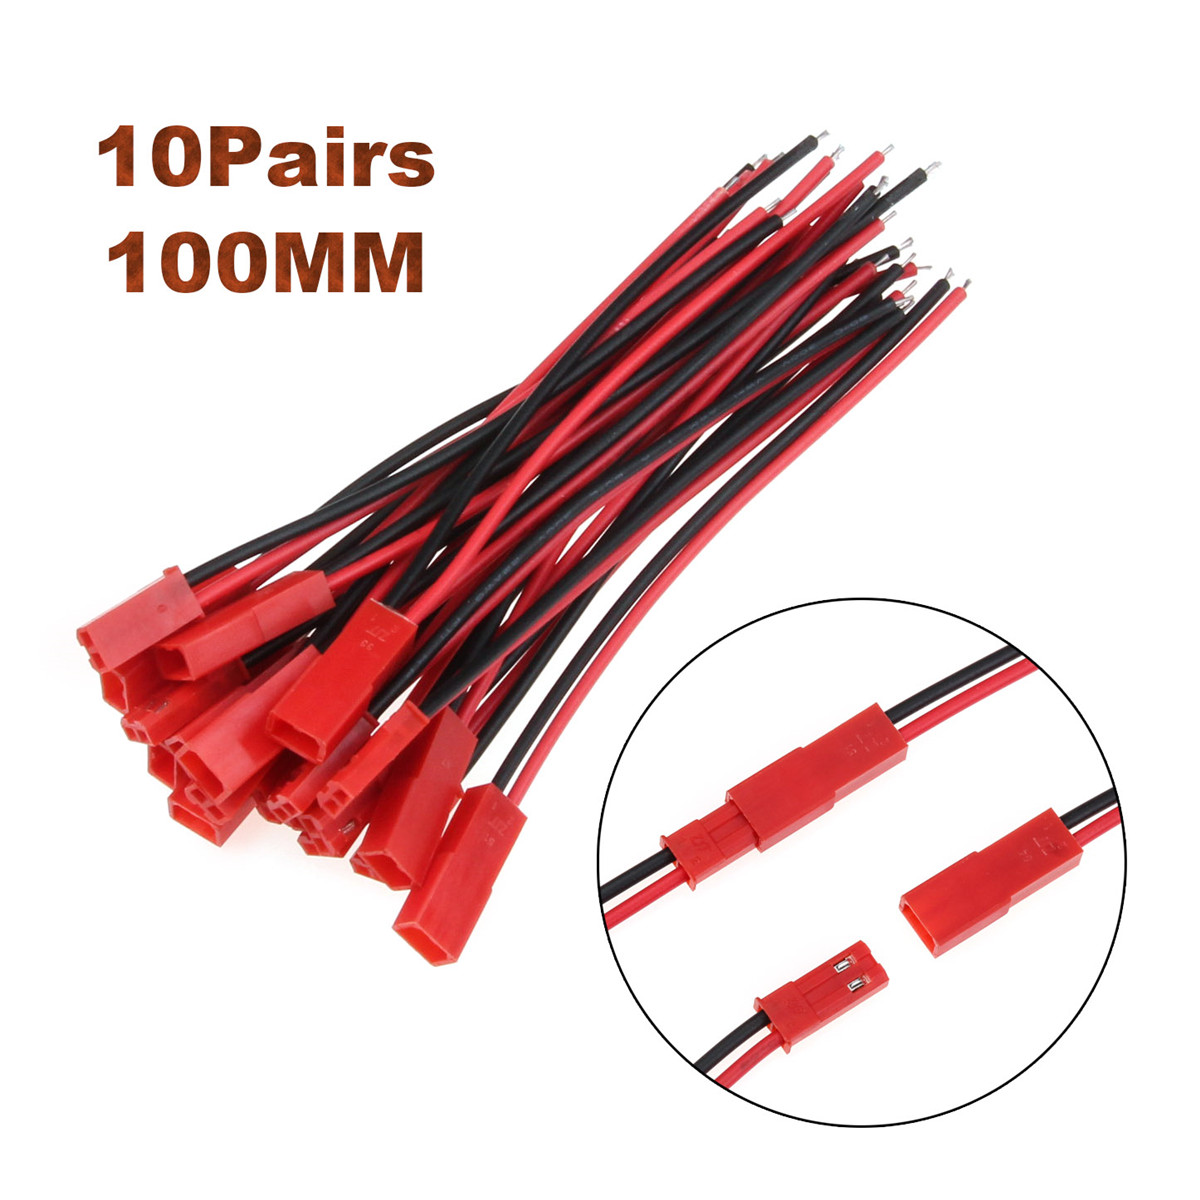 2-10pairs-100-150mm-2-pin-connector-plug-jst-cable-male-female-connectors-for-rc-bec-battery-helicopter-diy-fpv-drone-quadcopter